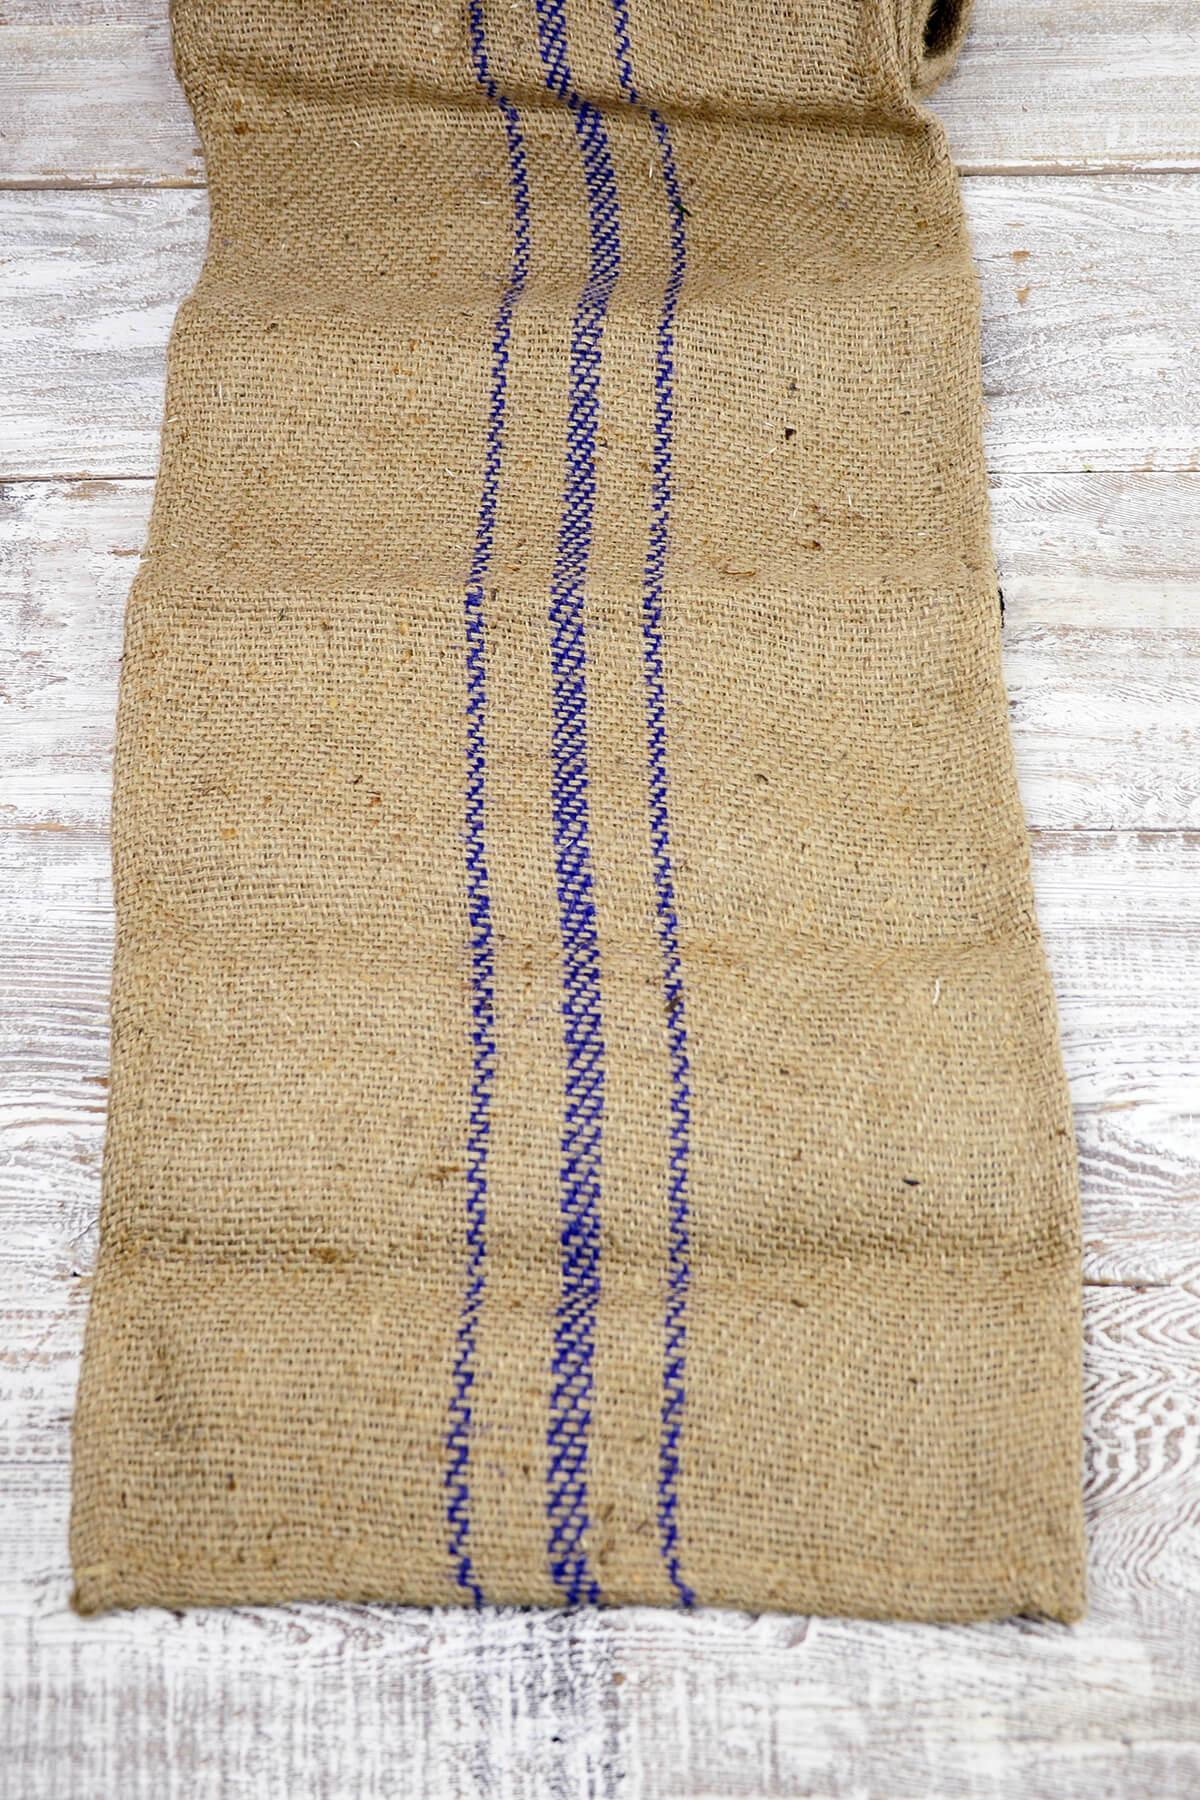 jute table runner with purple stripes 14 x 72 in